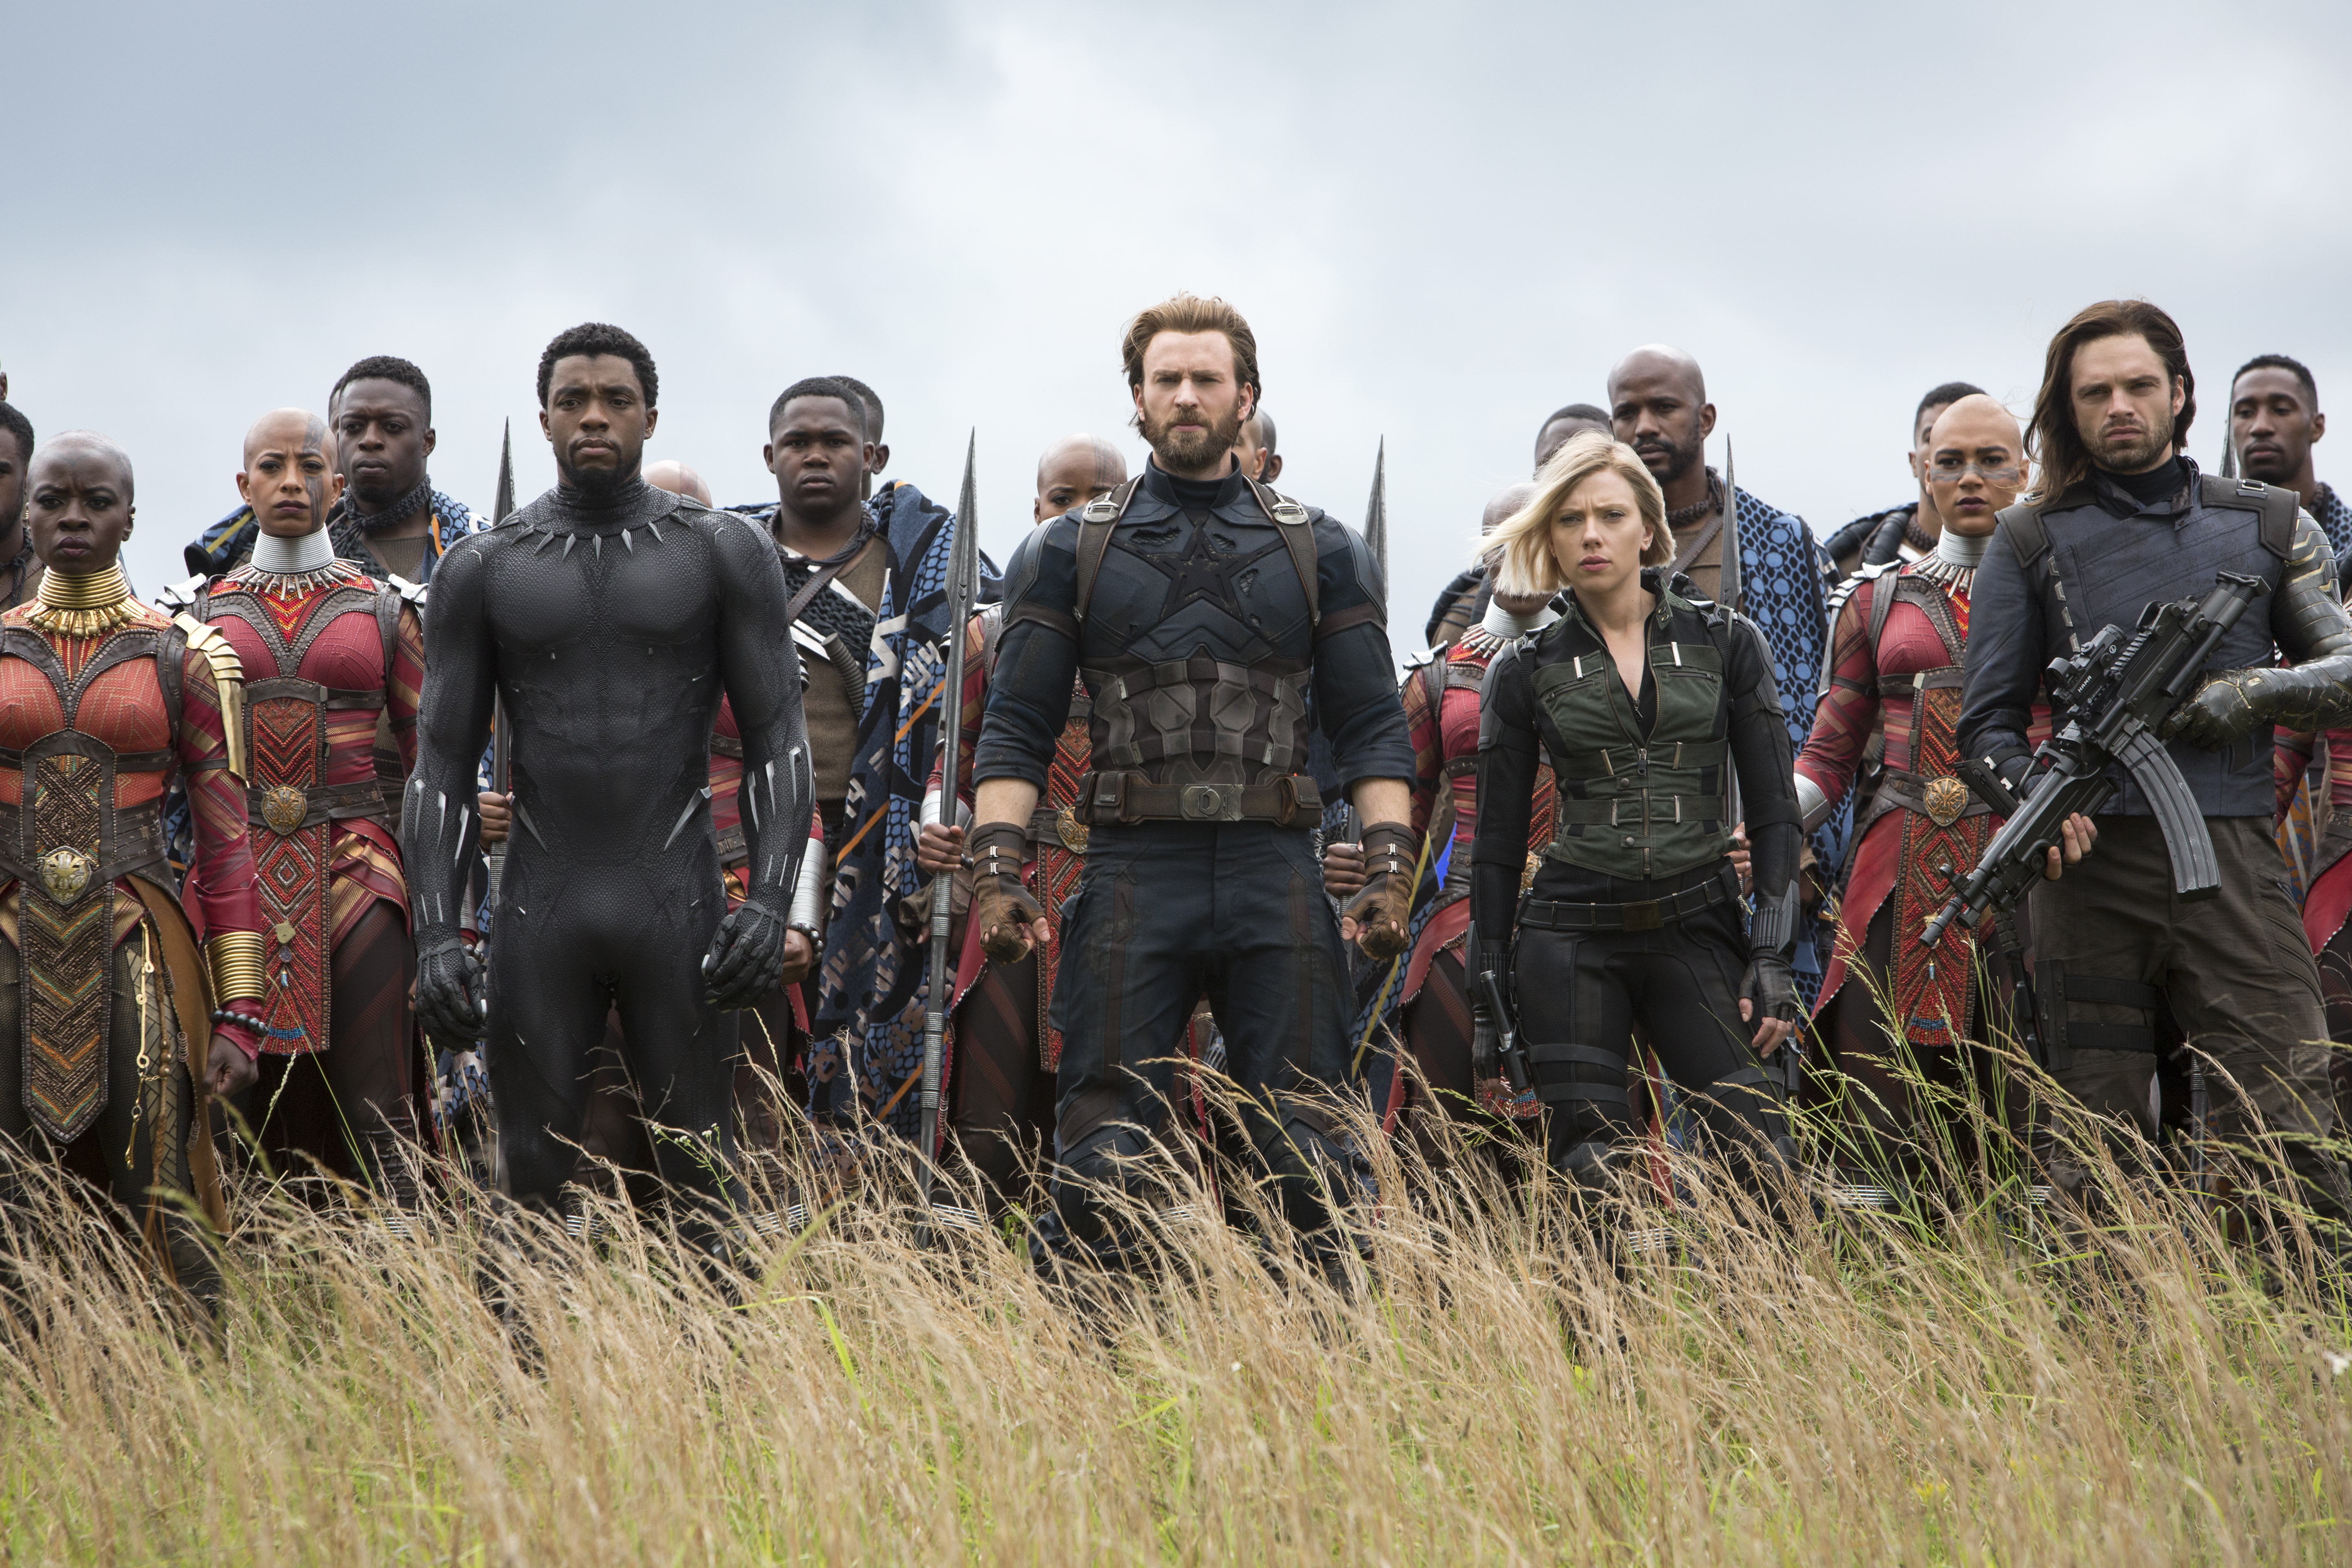 Can 'Avengers: Infinity War' Become Biggest Box Office Hit of All Time?